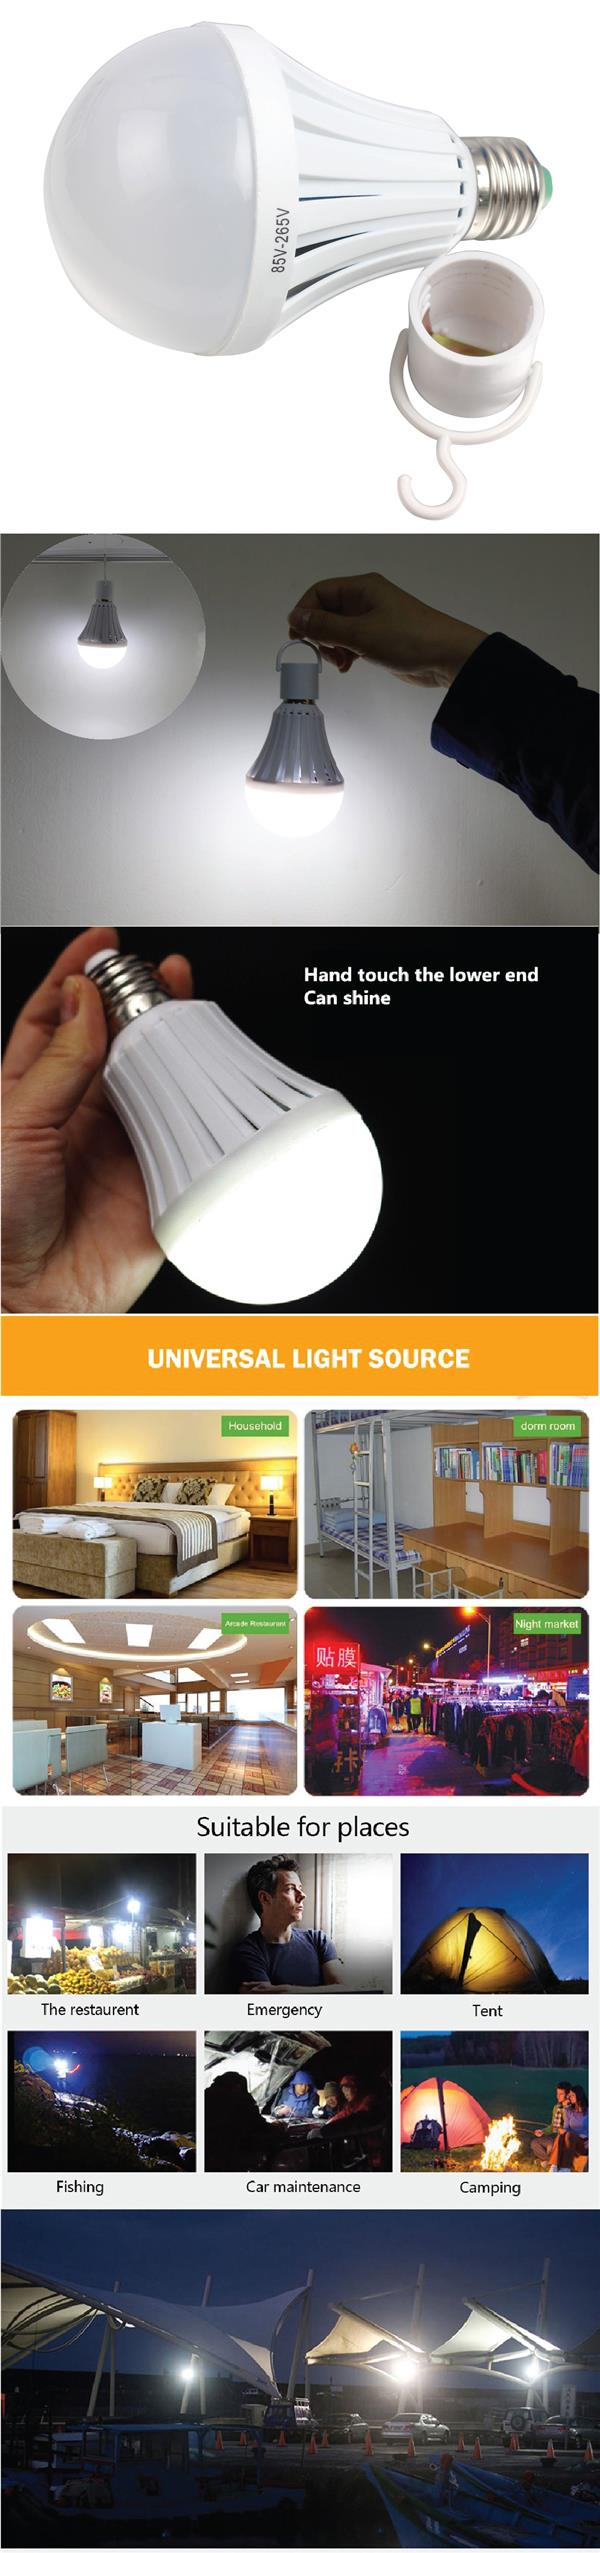 Led Light Bulb E27 12w Emergency Lig End 3 12 2019 415 Pm Lighting 6 Best Images Of Wiring Lamp Indoor Outdoor